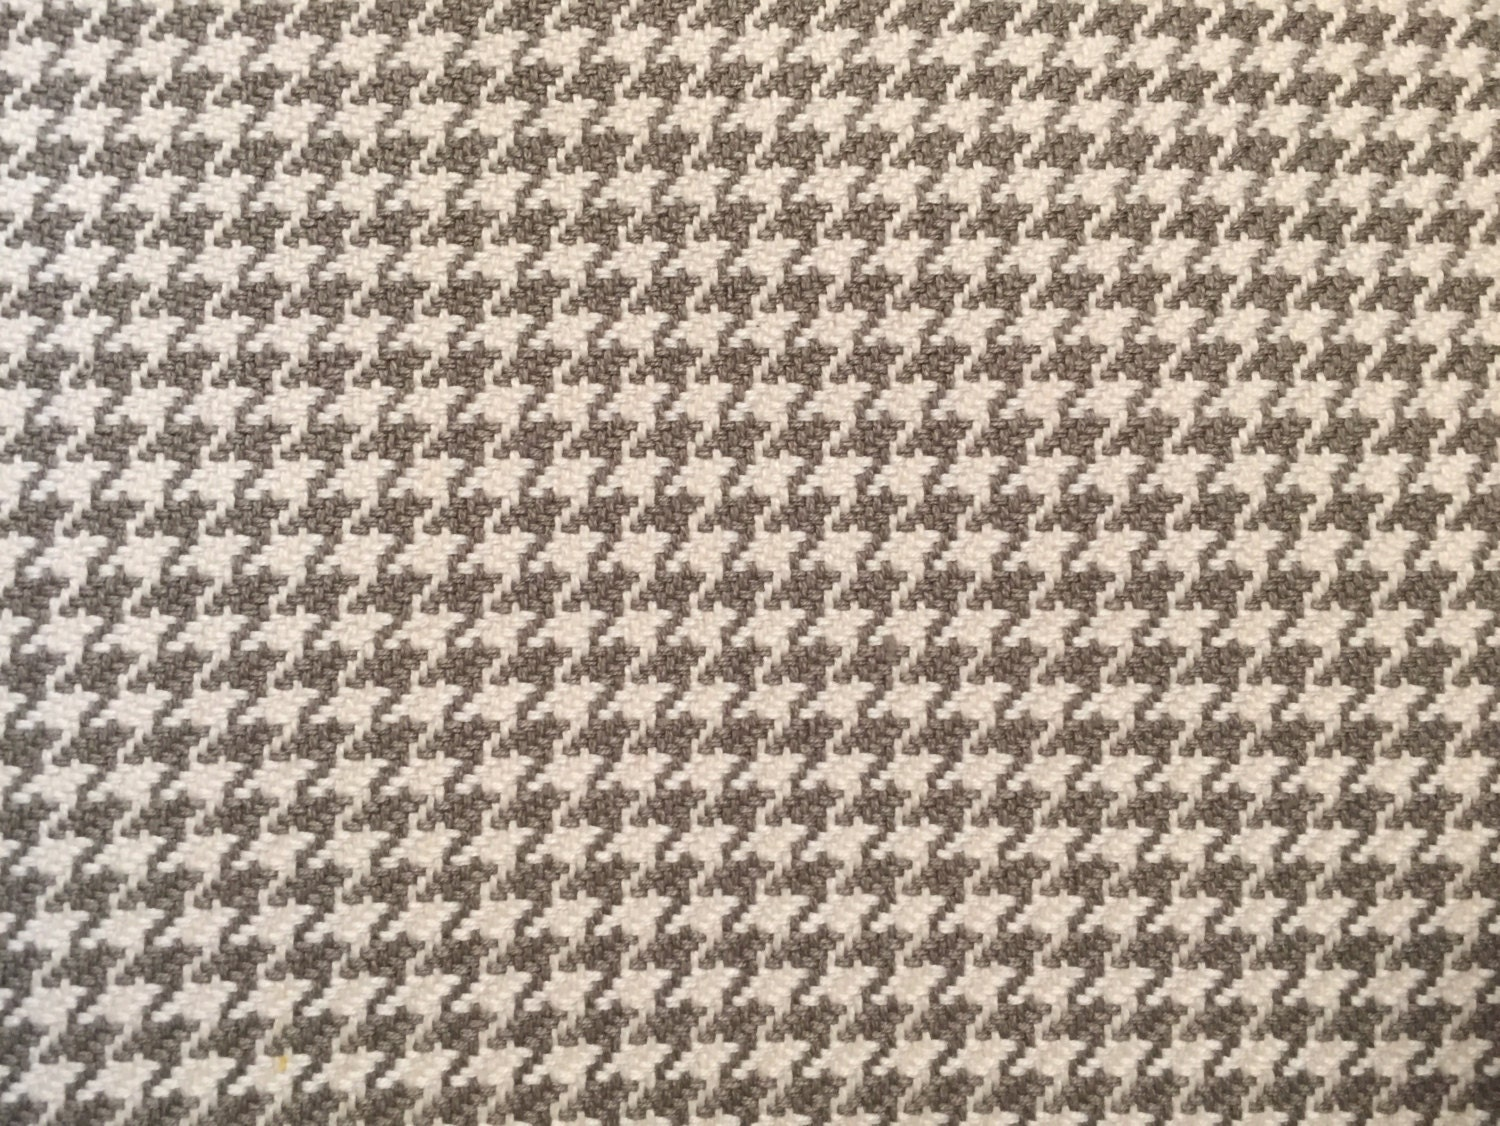 Grey Houndstooth Upholstery Fabric By The Yard